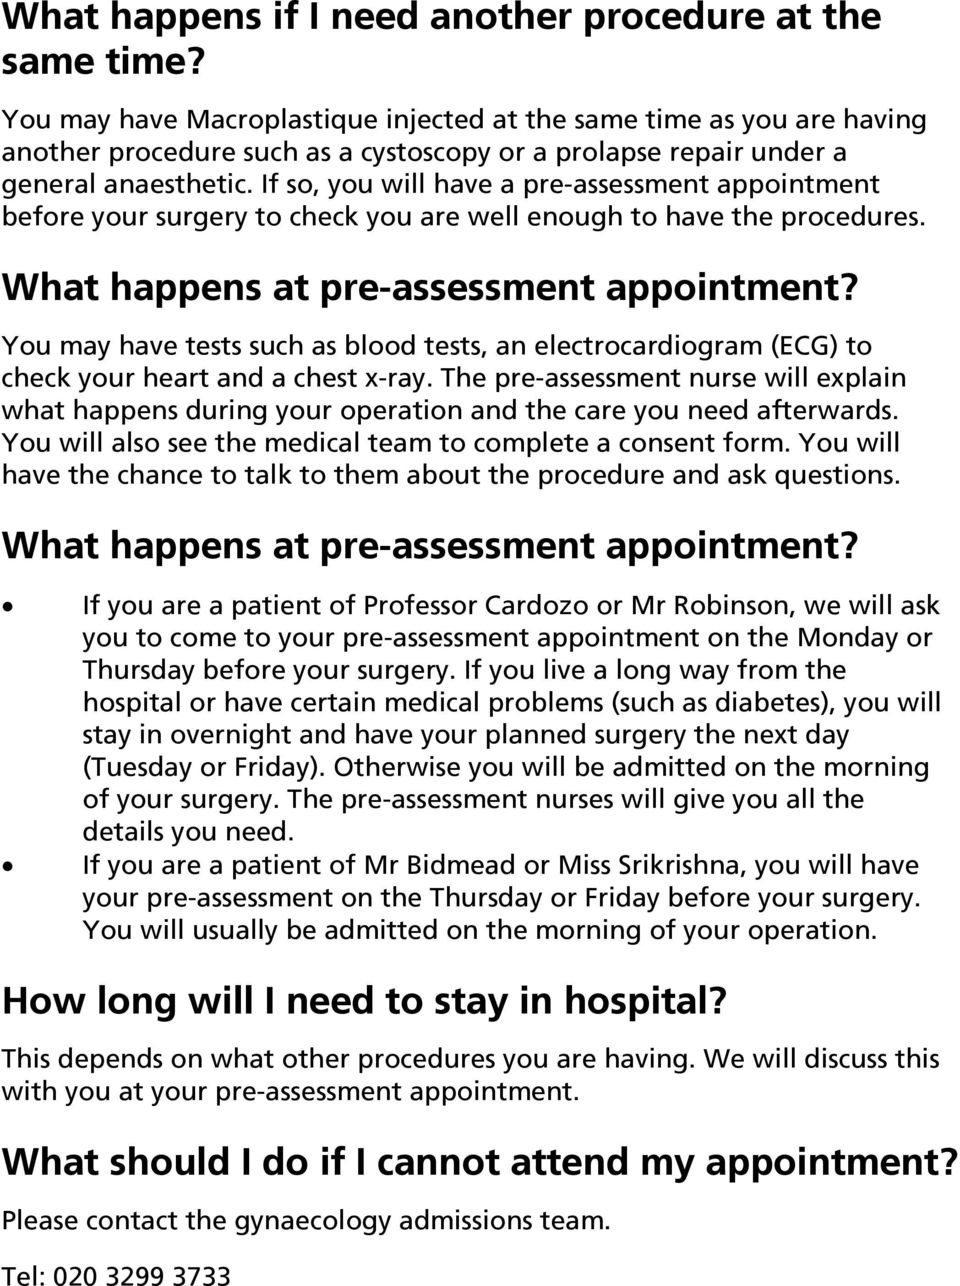 If so, you will have a pre-assessment appointment before your surgery to check you are well enough to have the procedures. What happens at pre-assessment appointment?